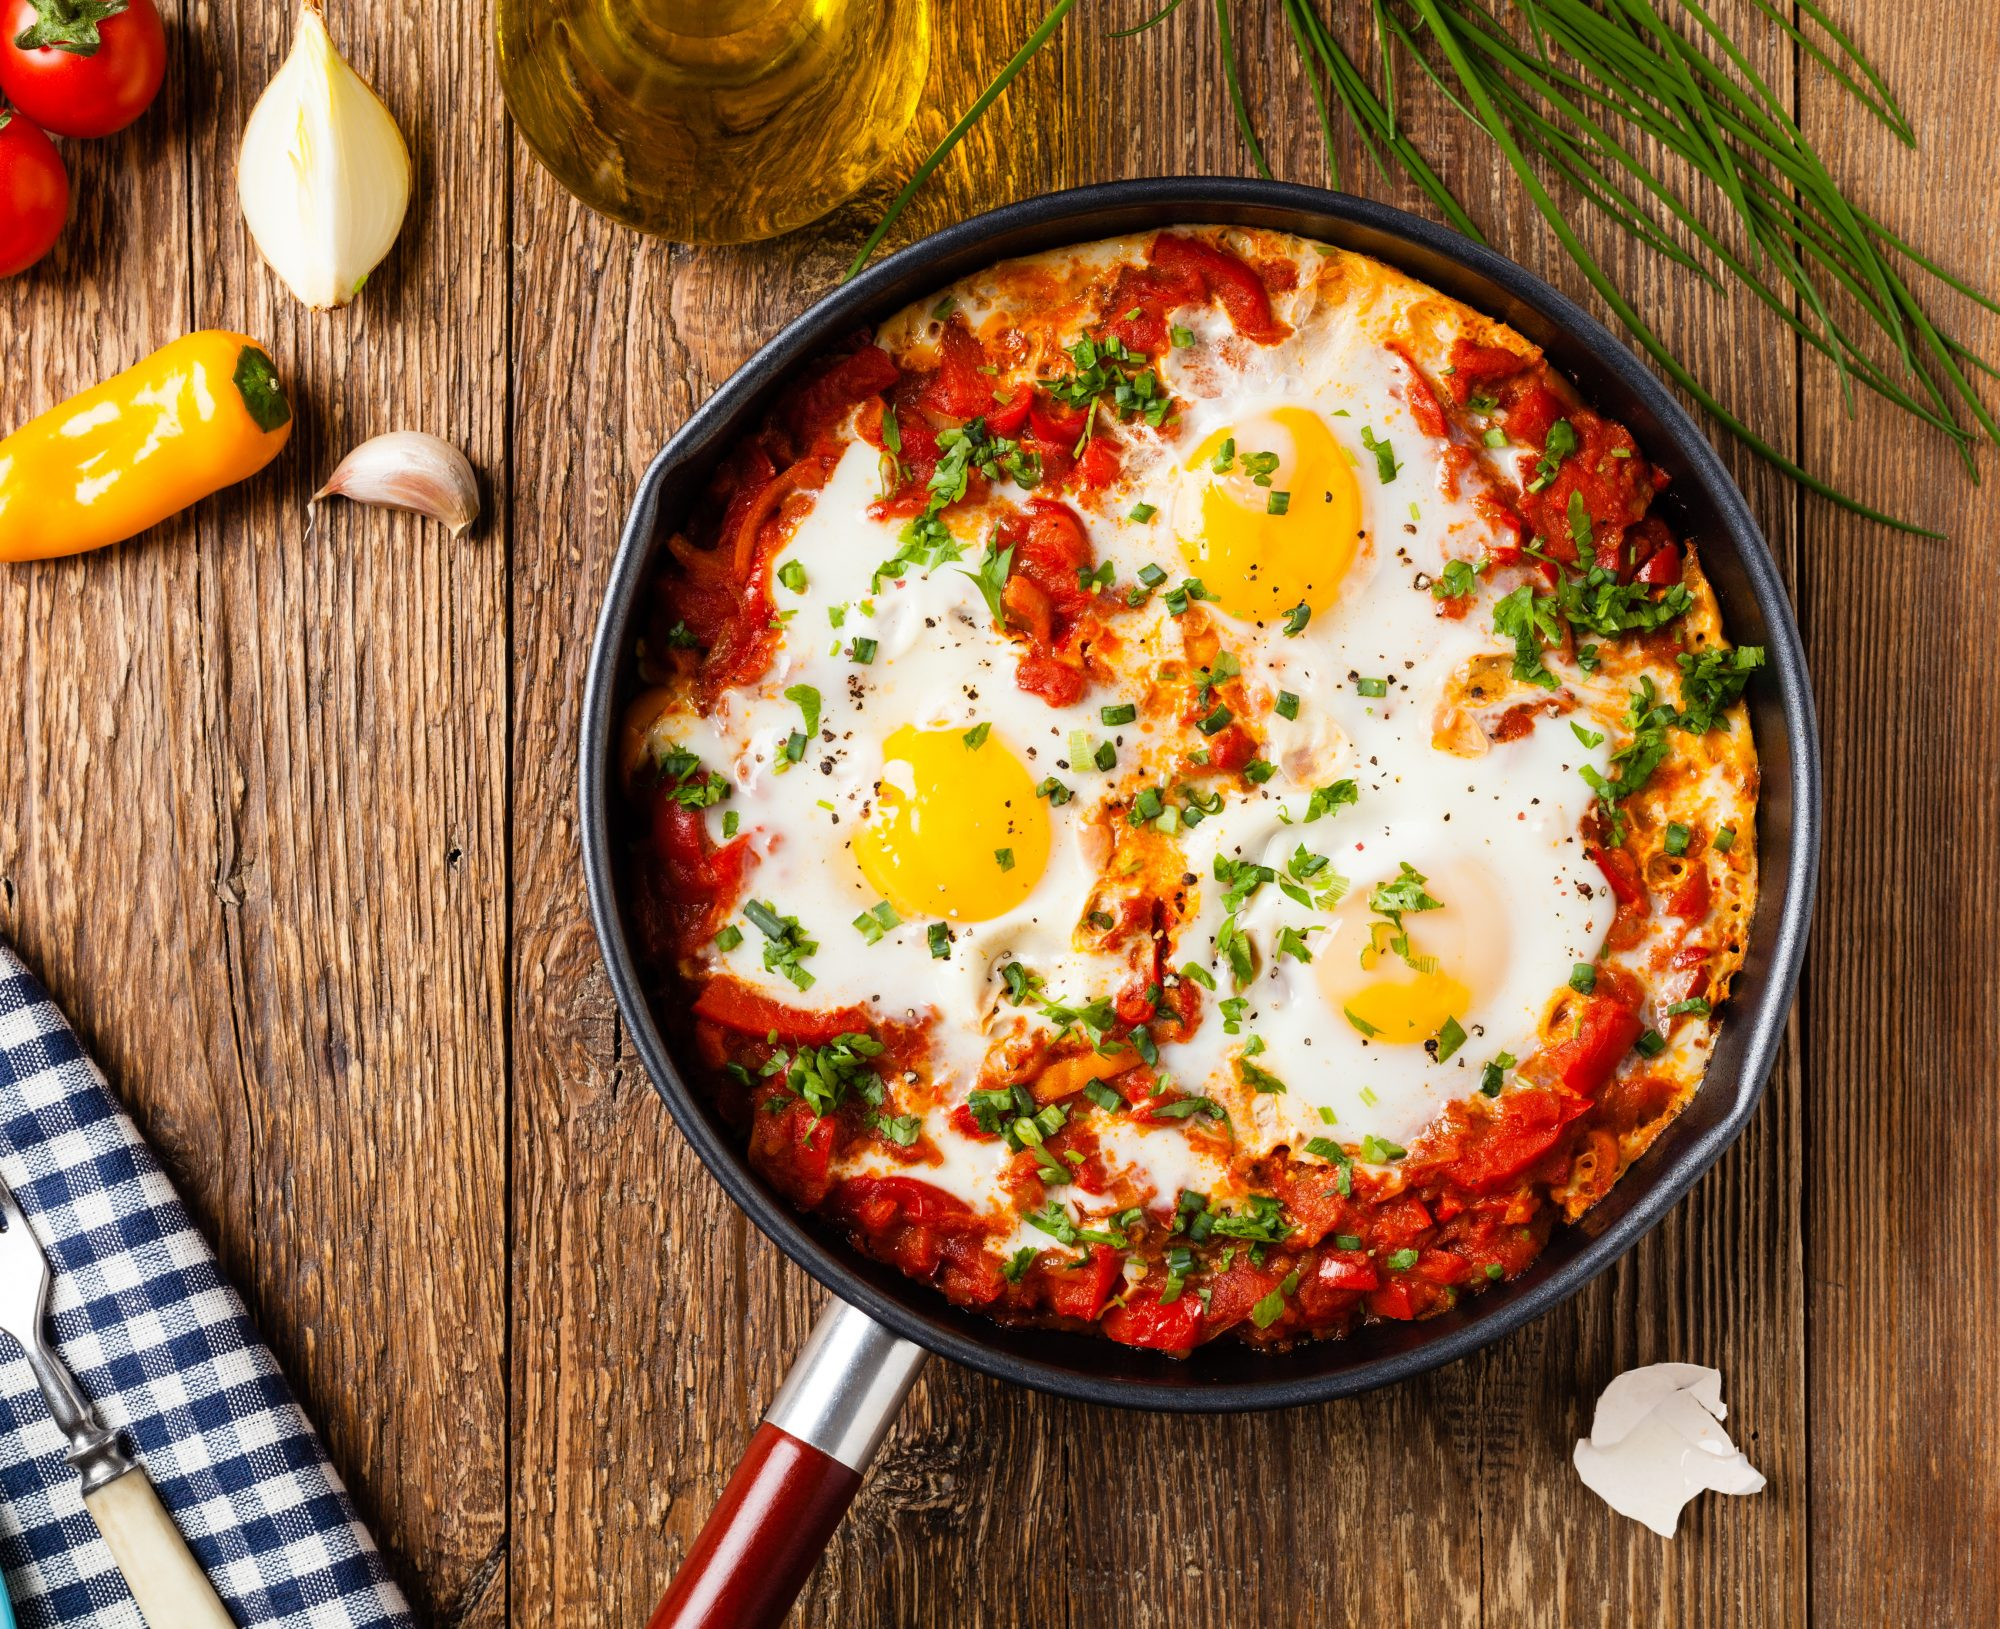 shakshouka traditionnelle